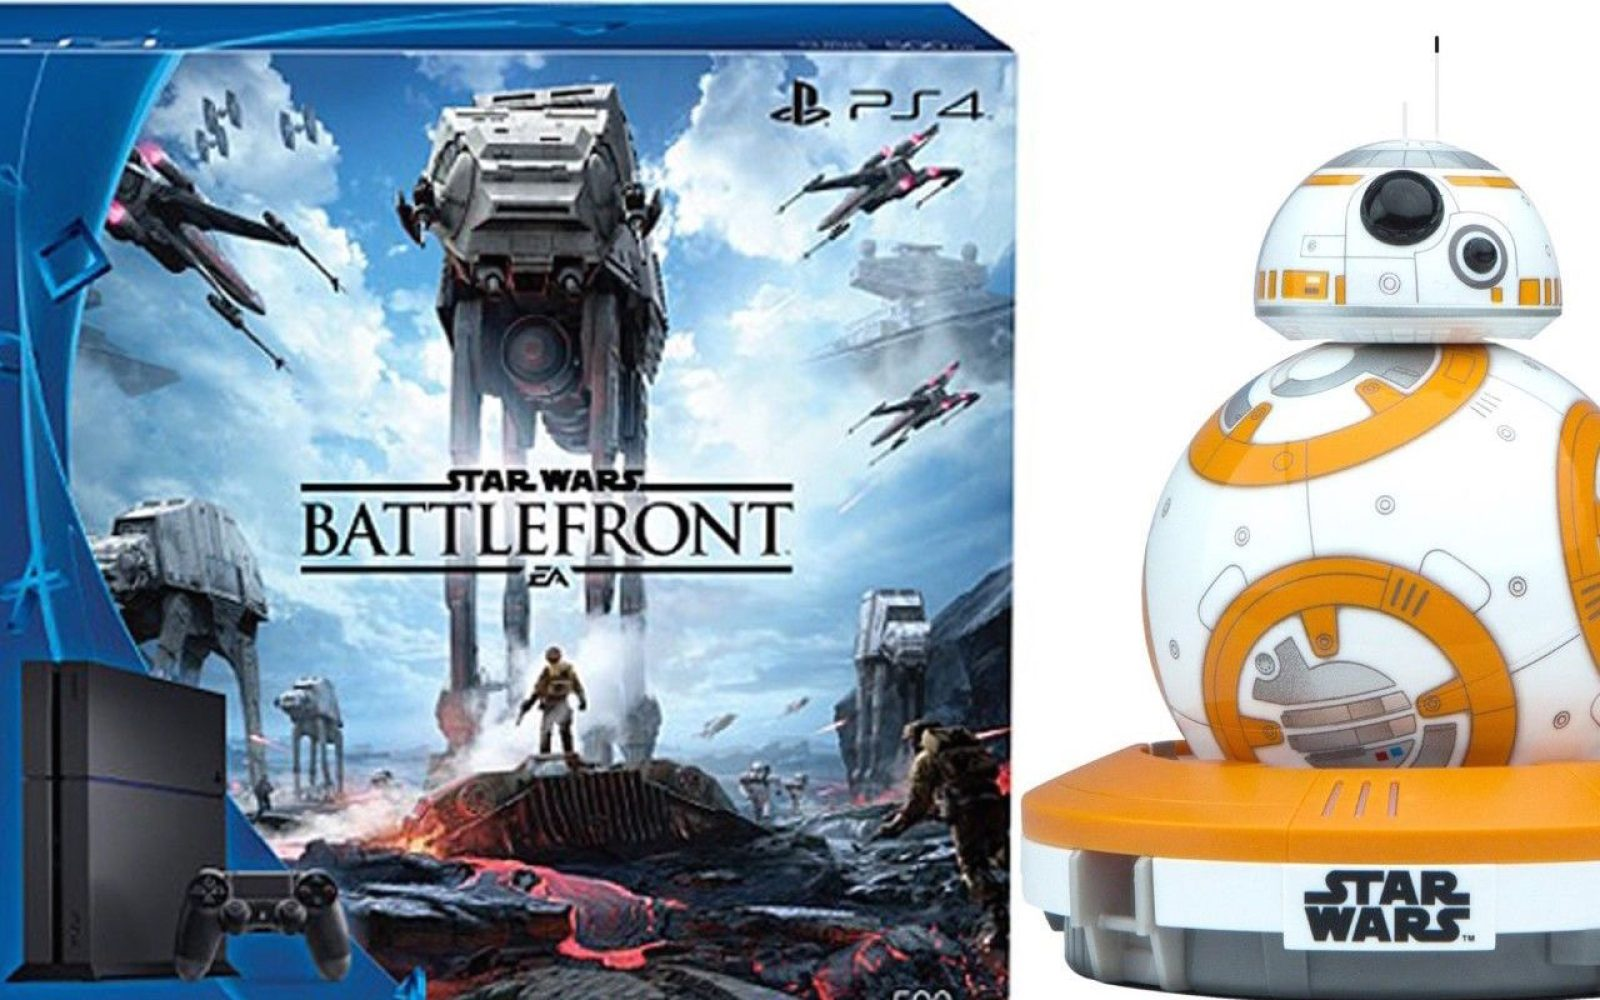 Star Wars Battlefront 9to5toys Bb8 Special Edition Bundle By Sphero App Enabled Droid